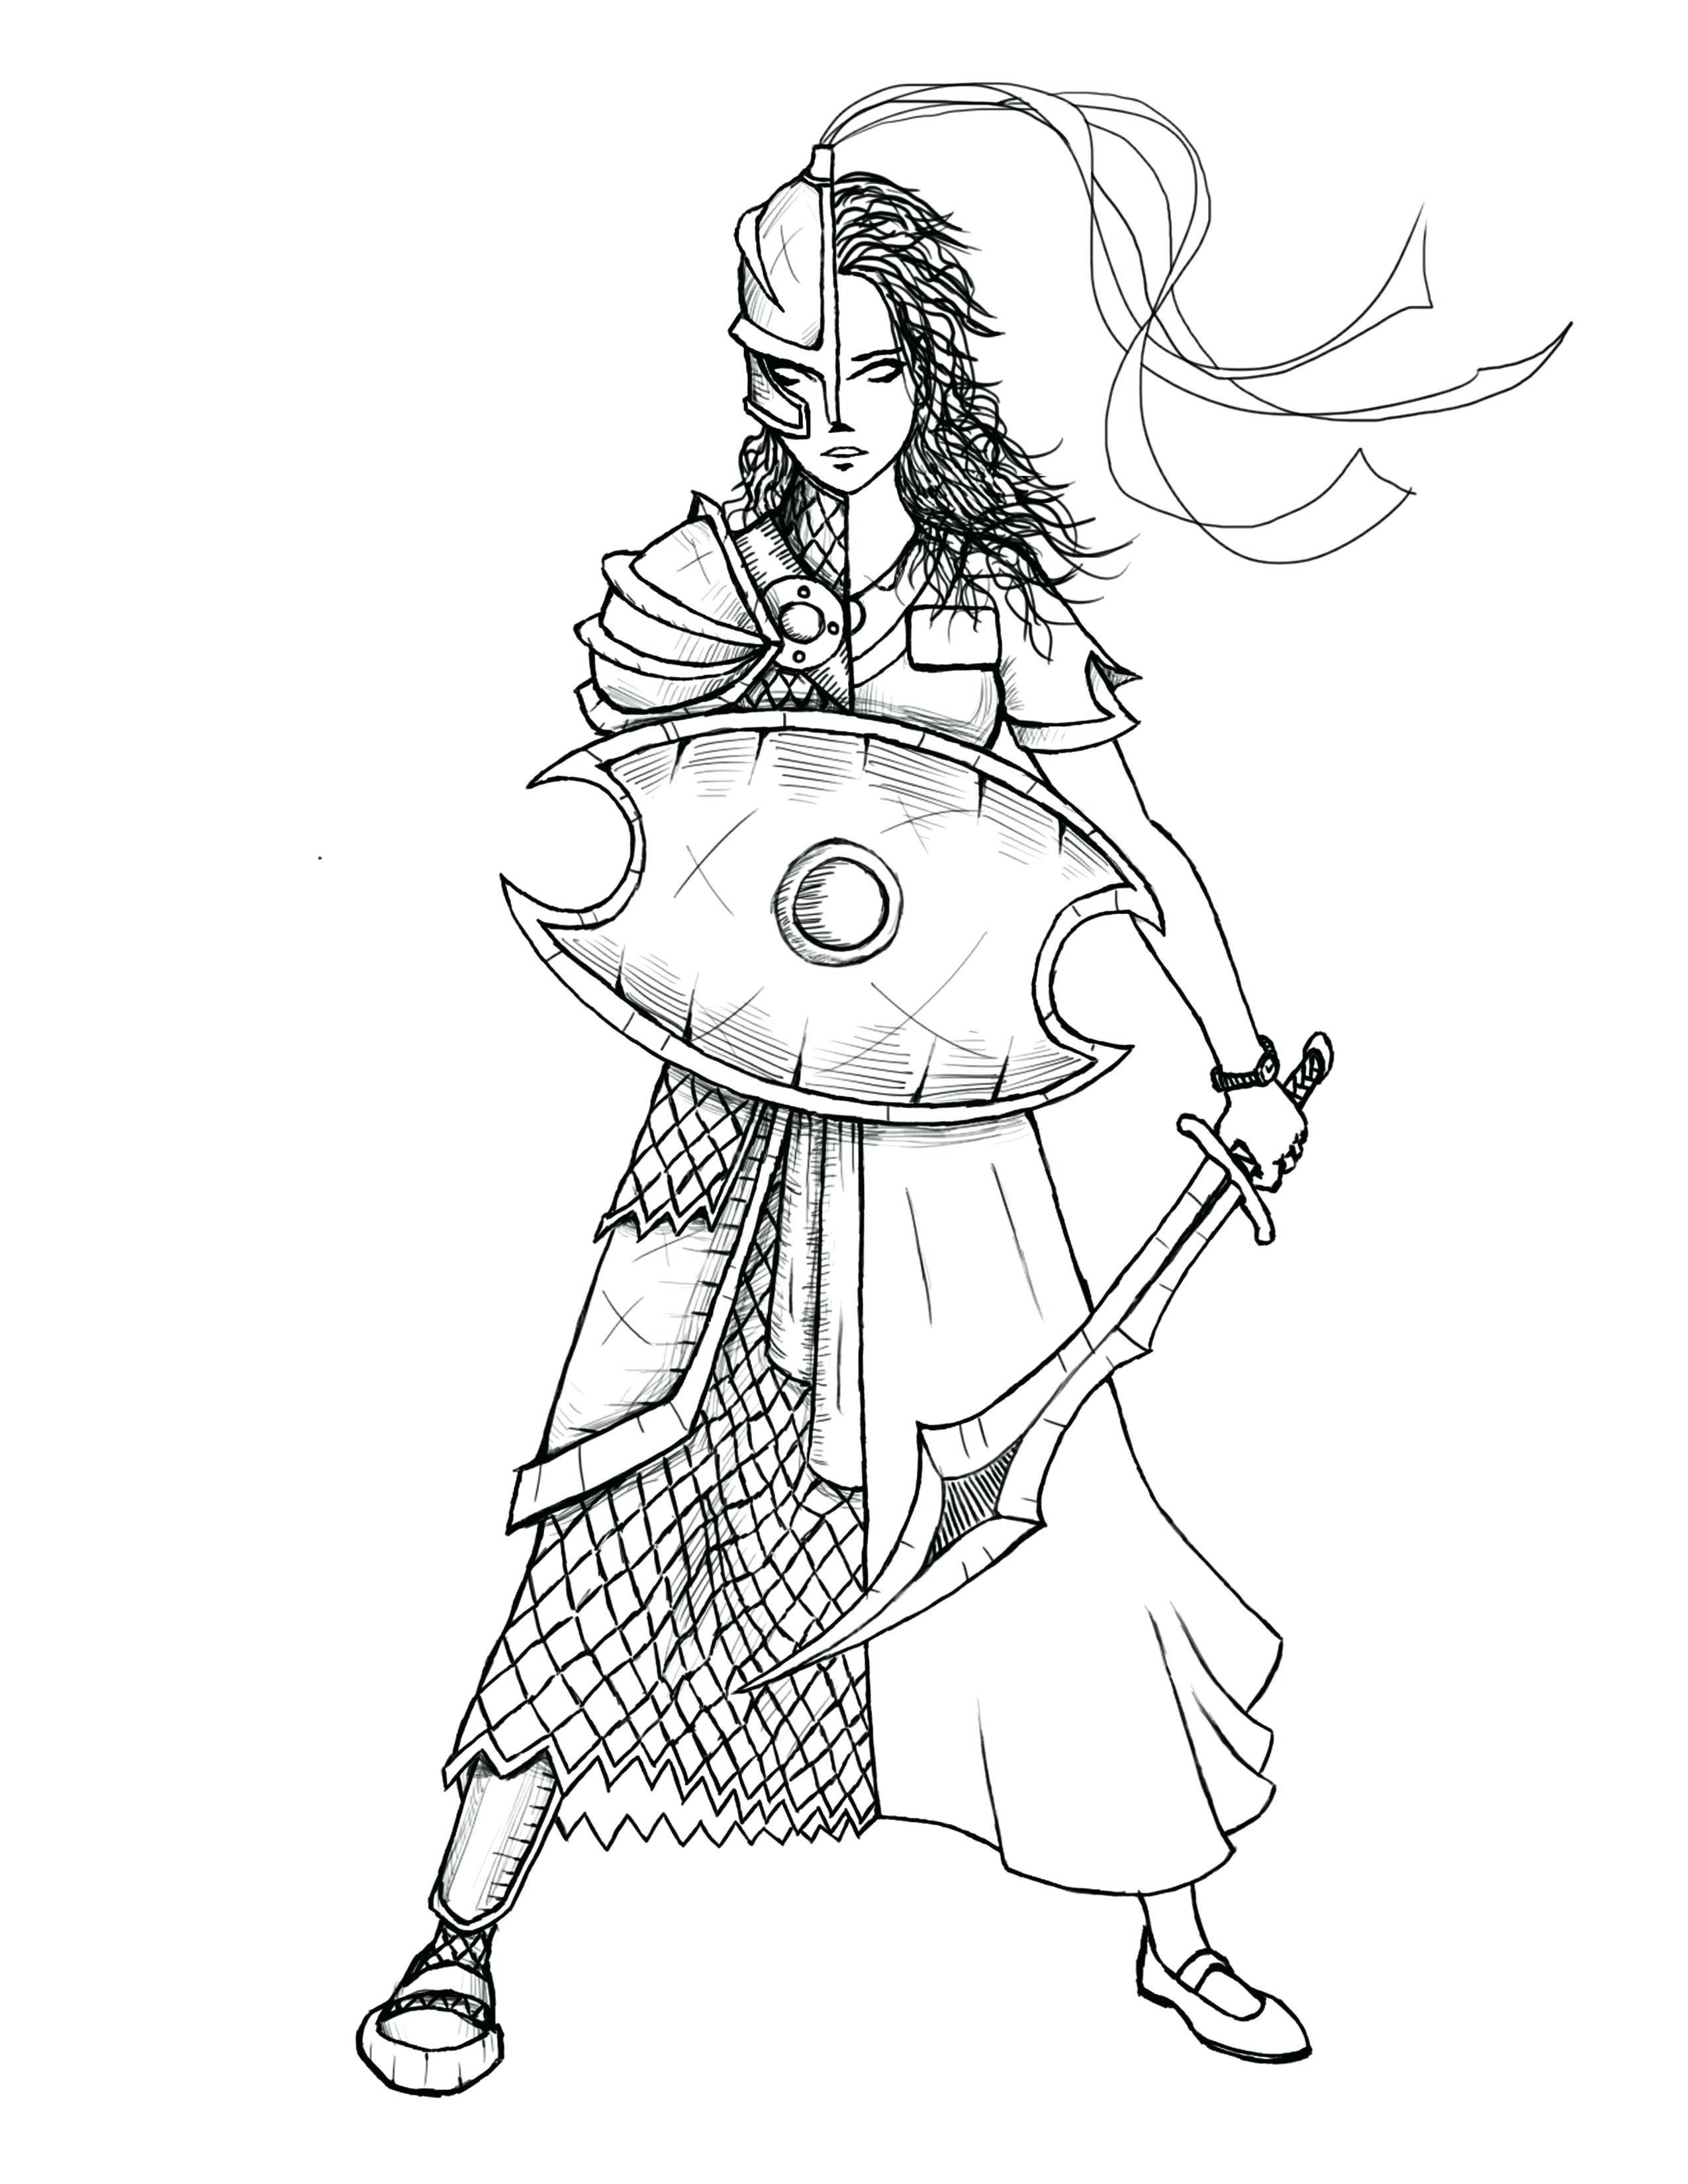 Armor Of God Coloring Pages Inspirational Armor Coloring Page